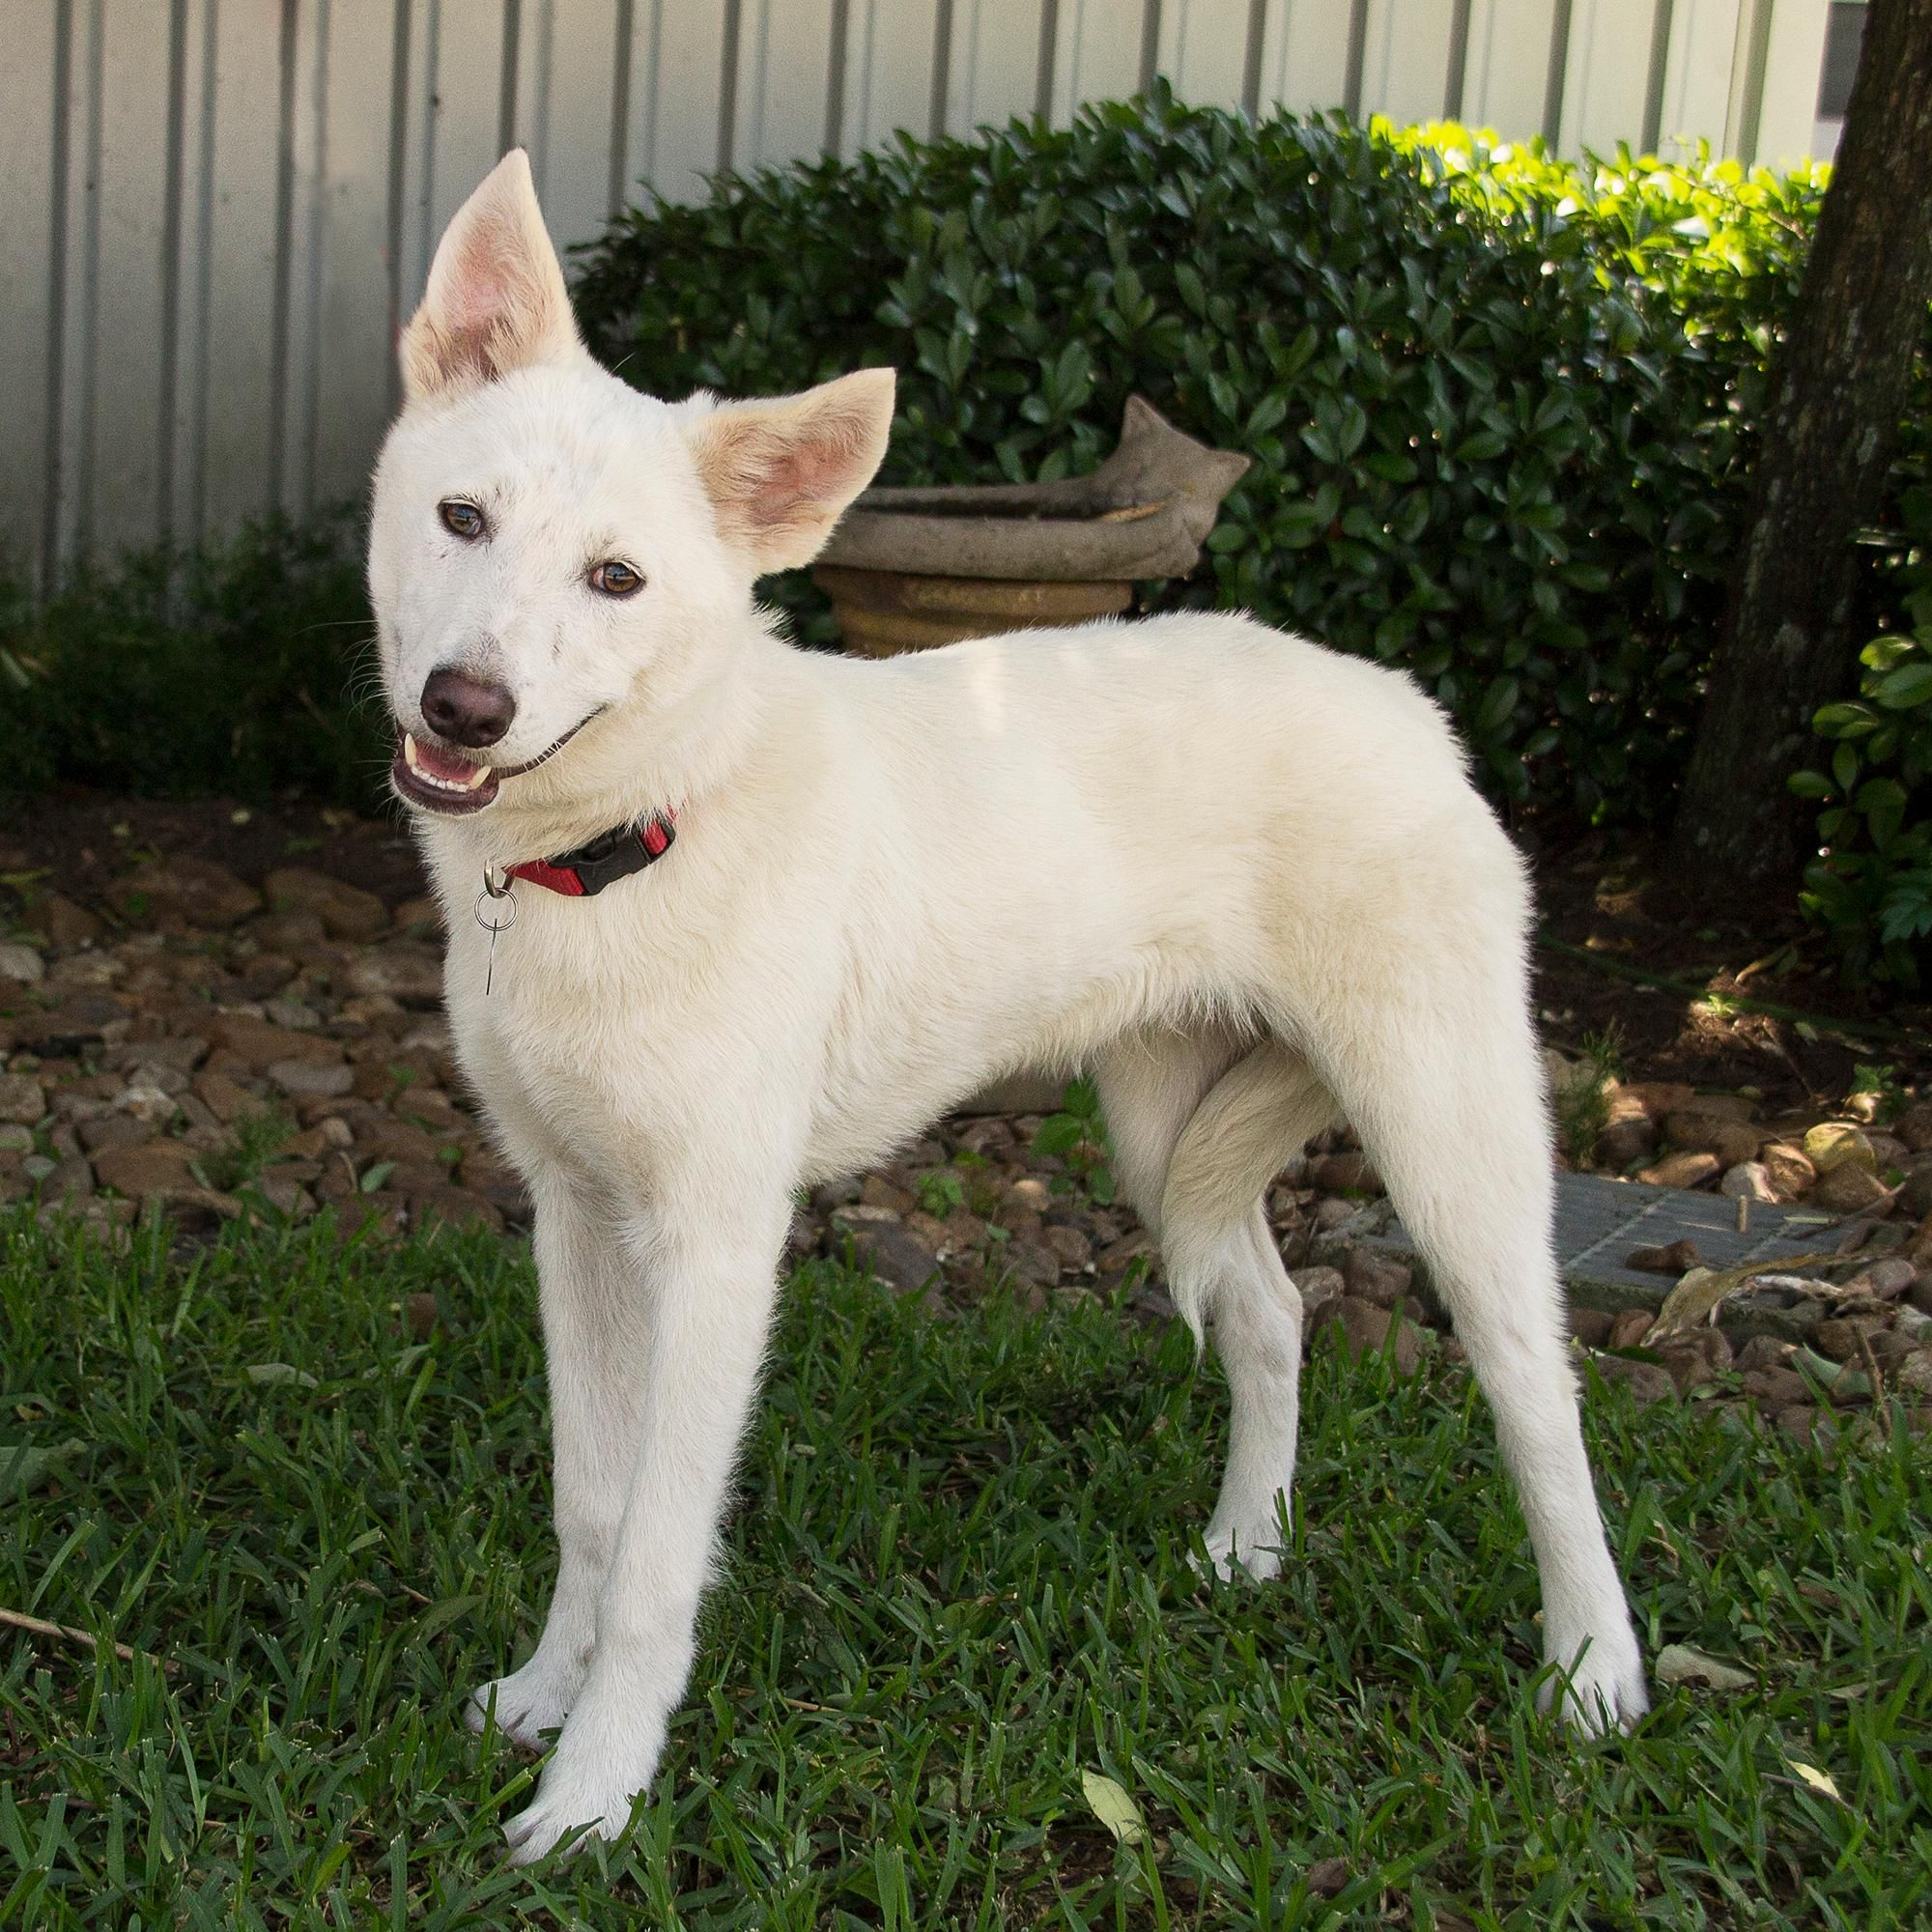 Interesting A Forever Family Near Use Petfinder To Find Adoptable Pets Your Adopt Smuggler On Dachshund Husky Mix Temperament Dachshund Husky Mix Size Smuggler Is An Adoptable Husky Searching